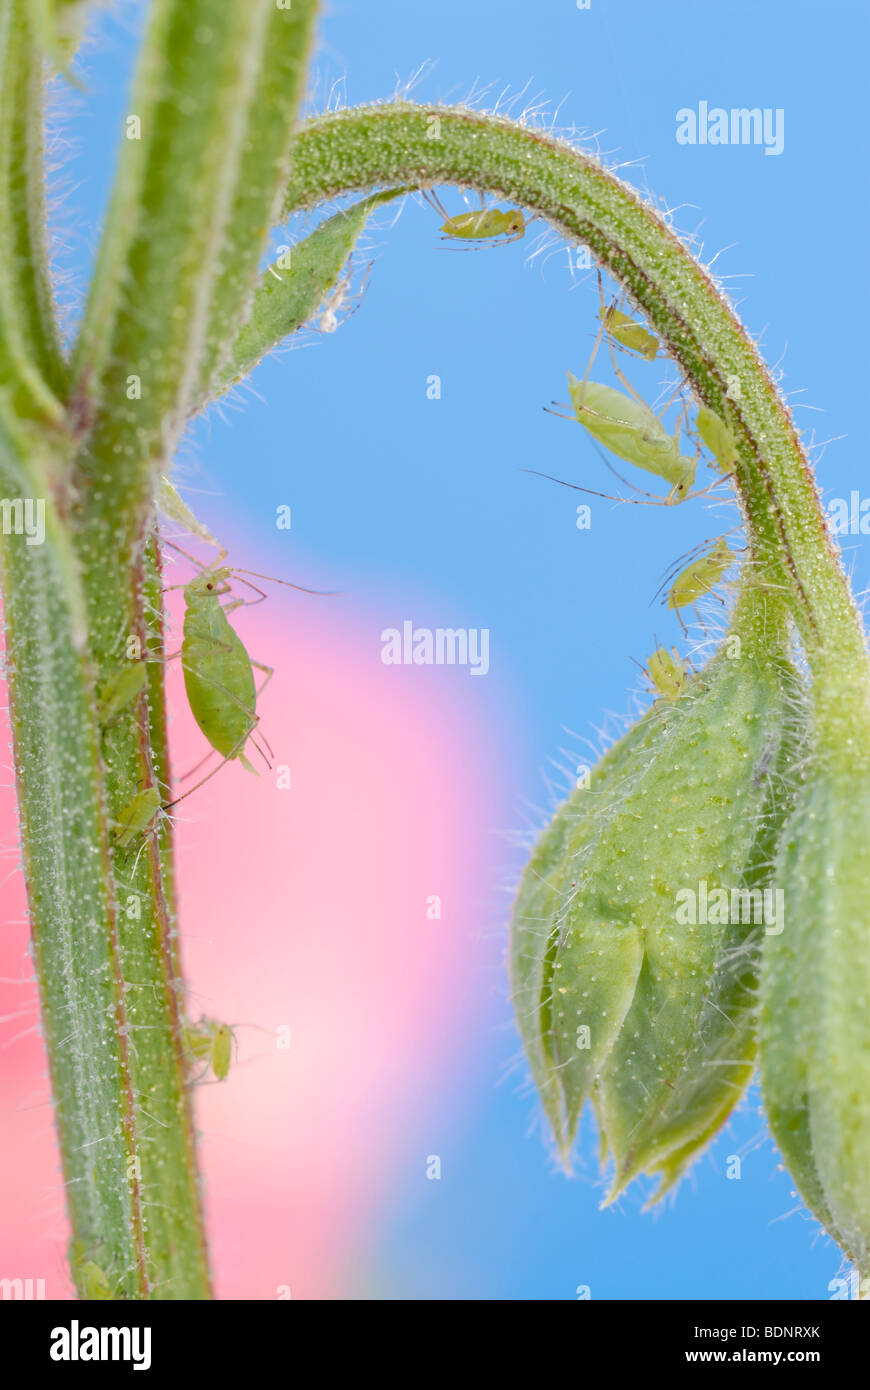 Greenfly aphids on Sweet pea - Stock Image